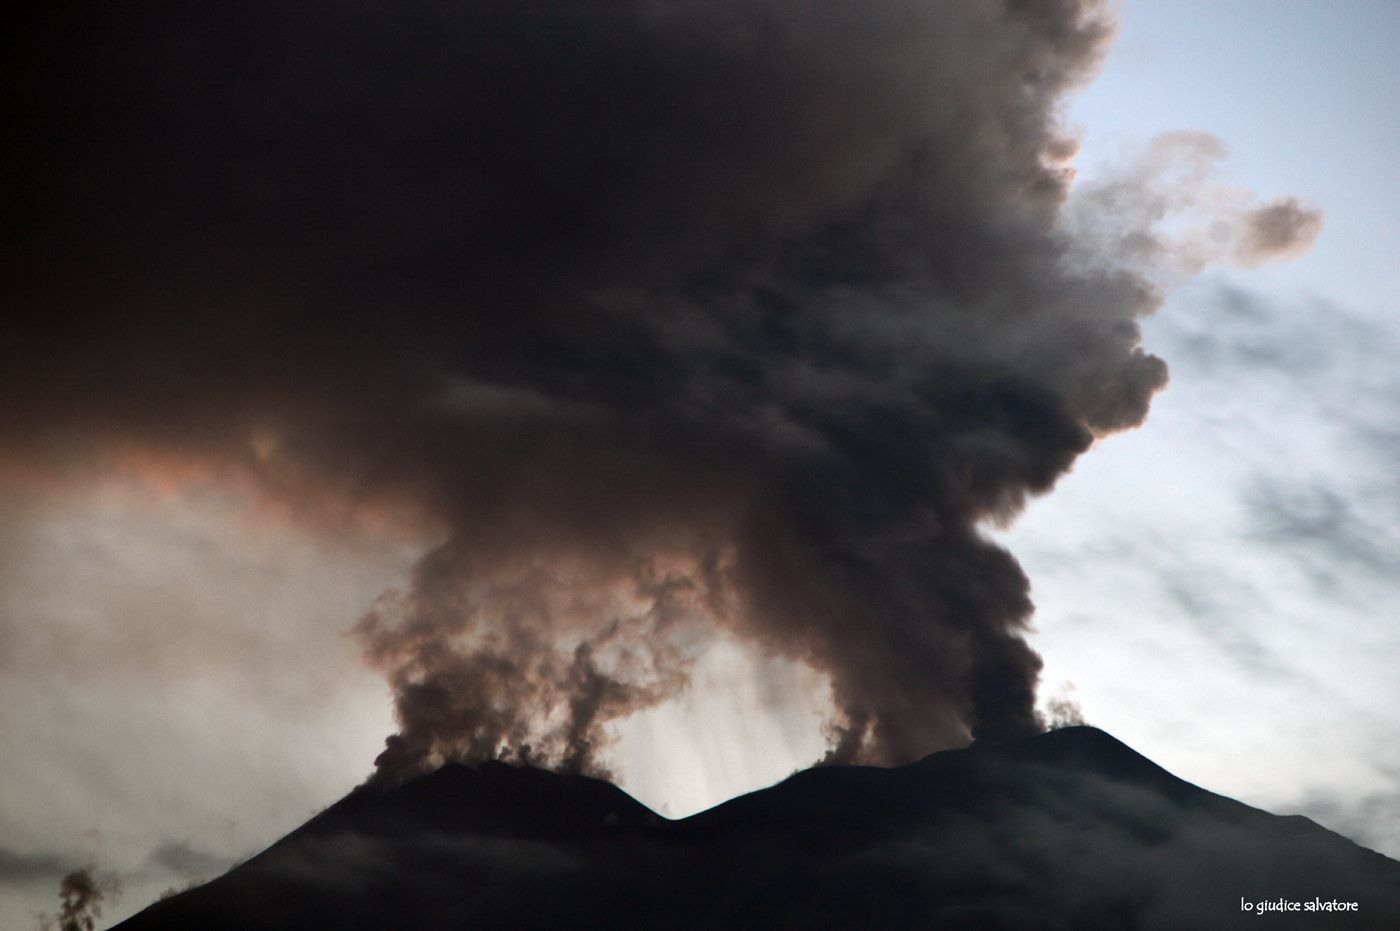 Etna - 19.01.2019 / 18h - émission de cendres au cratère NE - photo Salvatore Lo Giudice